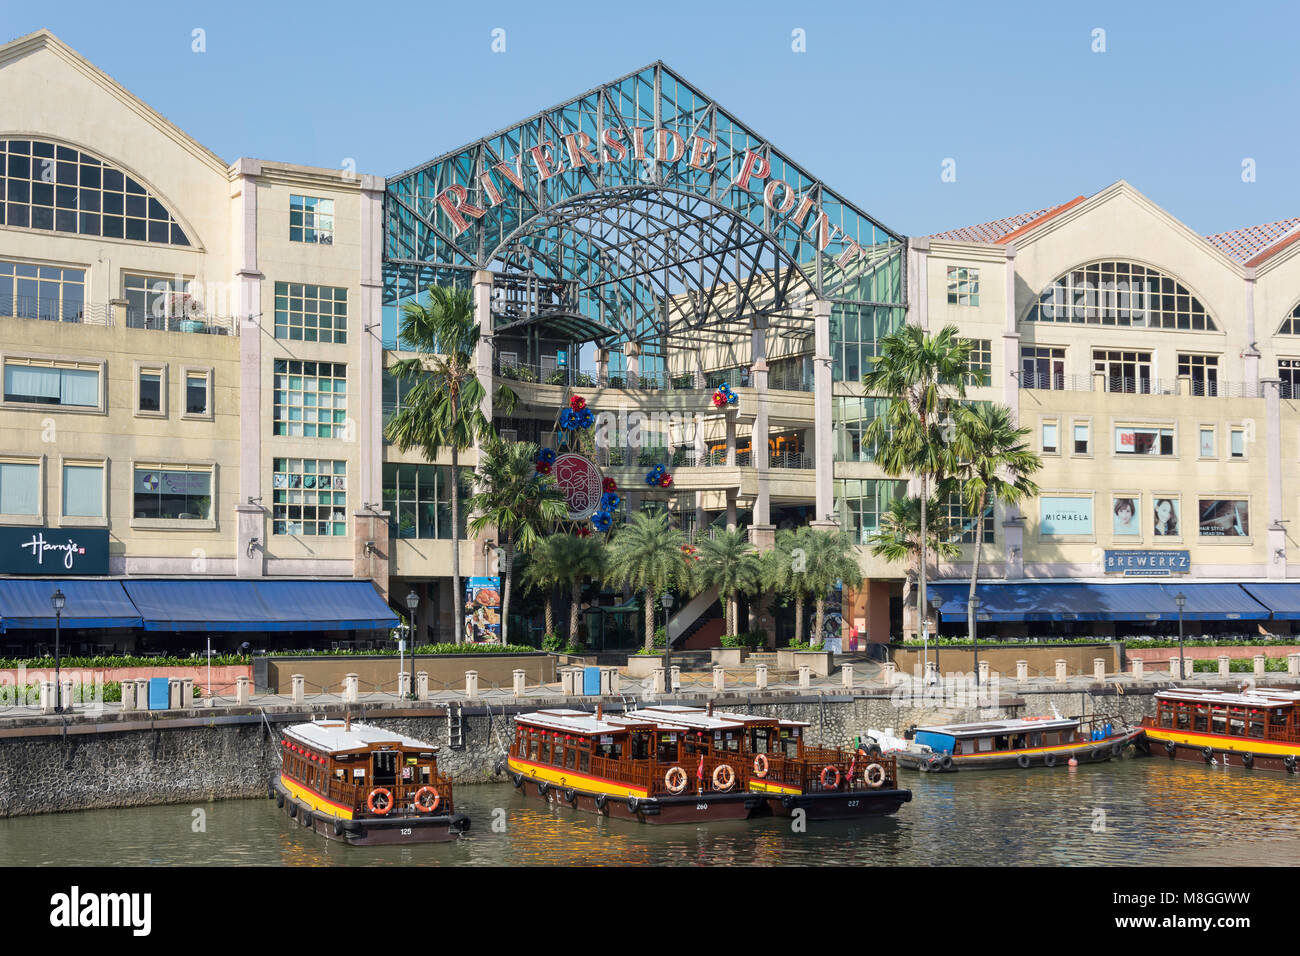 Riverside Point waterfront dining venue, Civic District, Central Area, Singapore Island (Pulau Ujong), Singapore - Stock Image